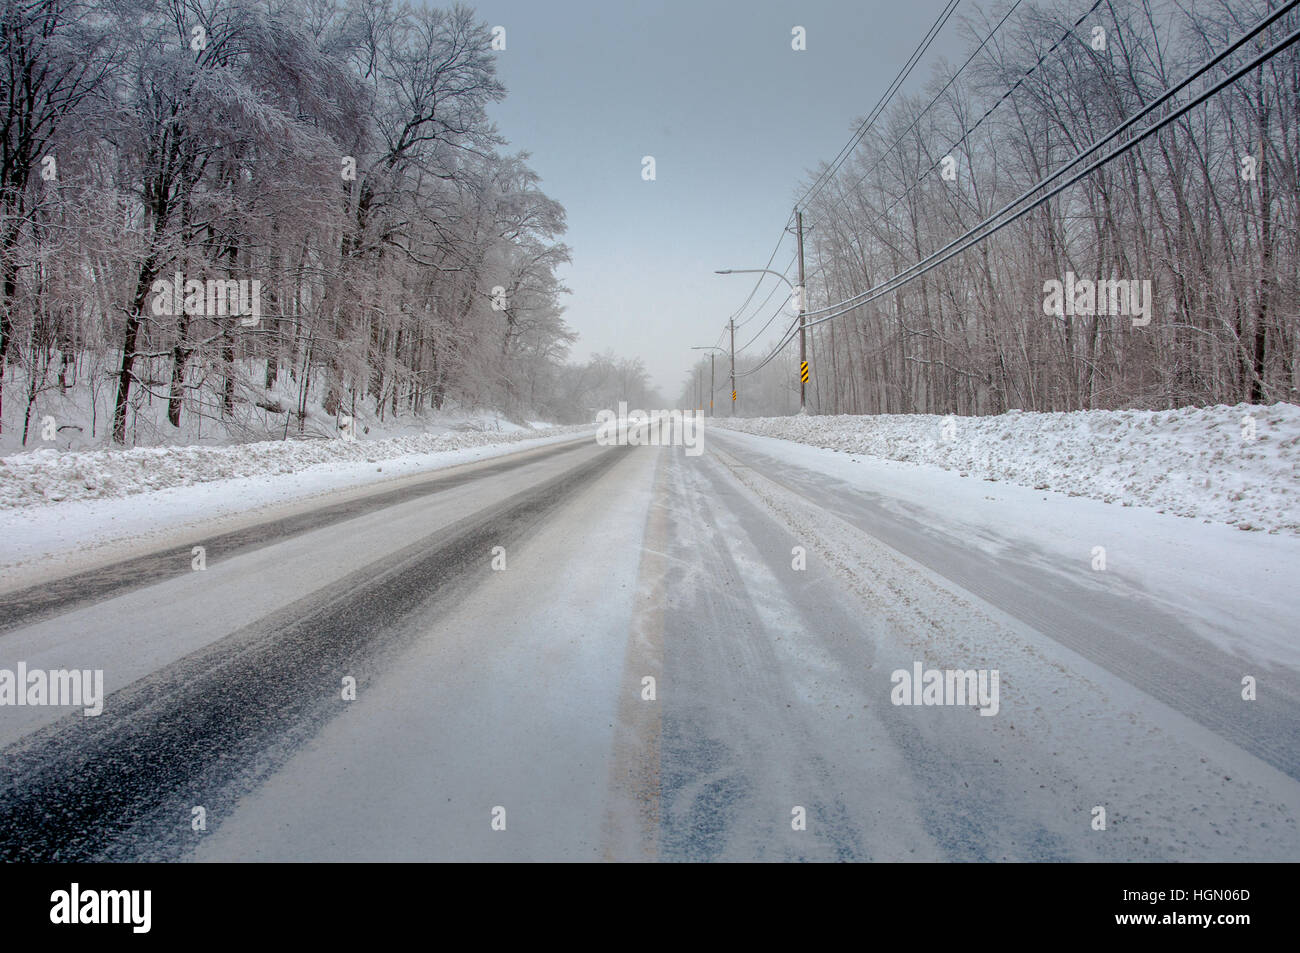 Winter icy cold road conditions 1. - Stock Image